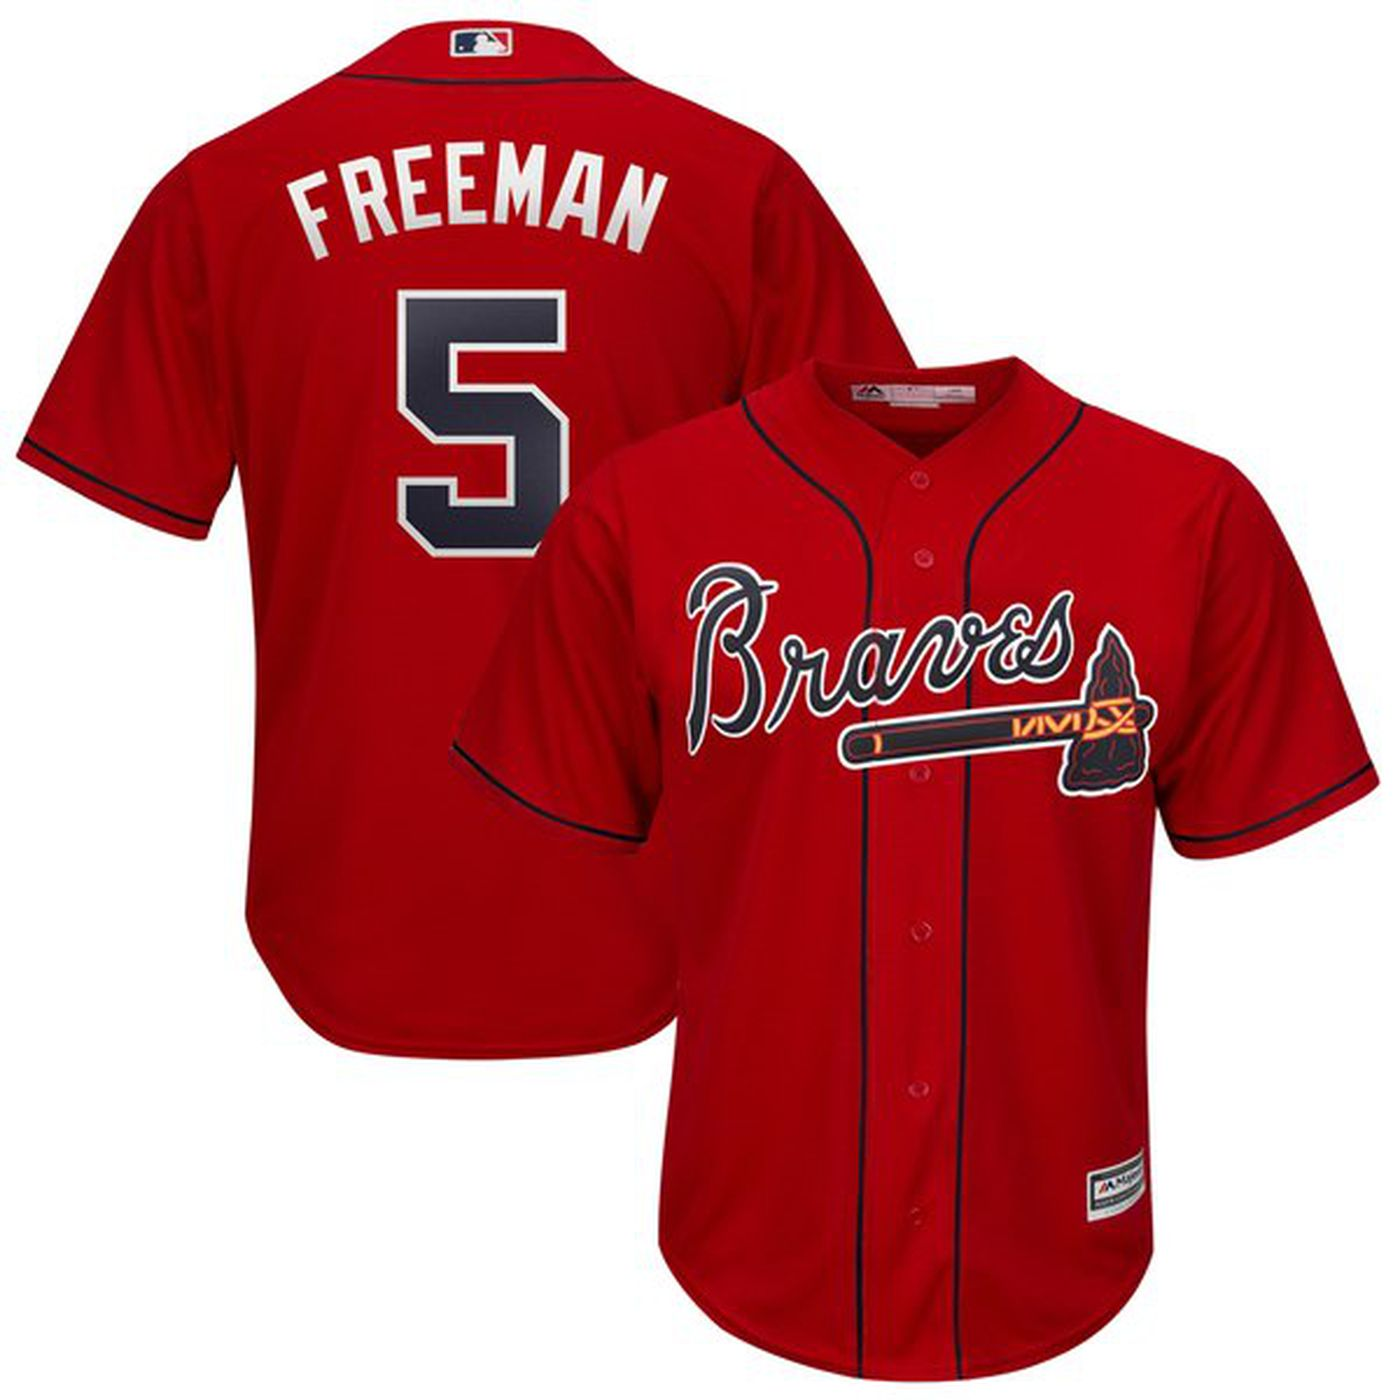 648507c0e05 Tracking all the new MLB uniforms you ll see this season